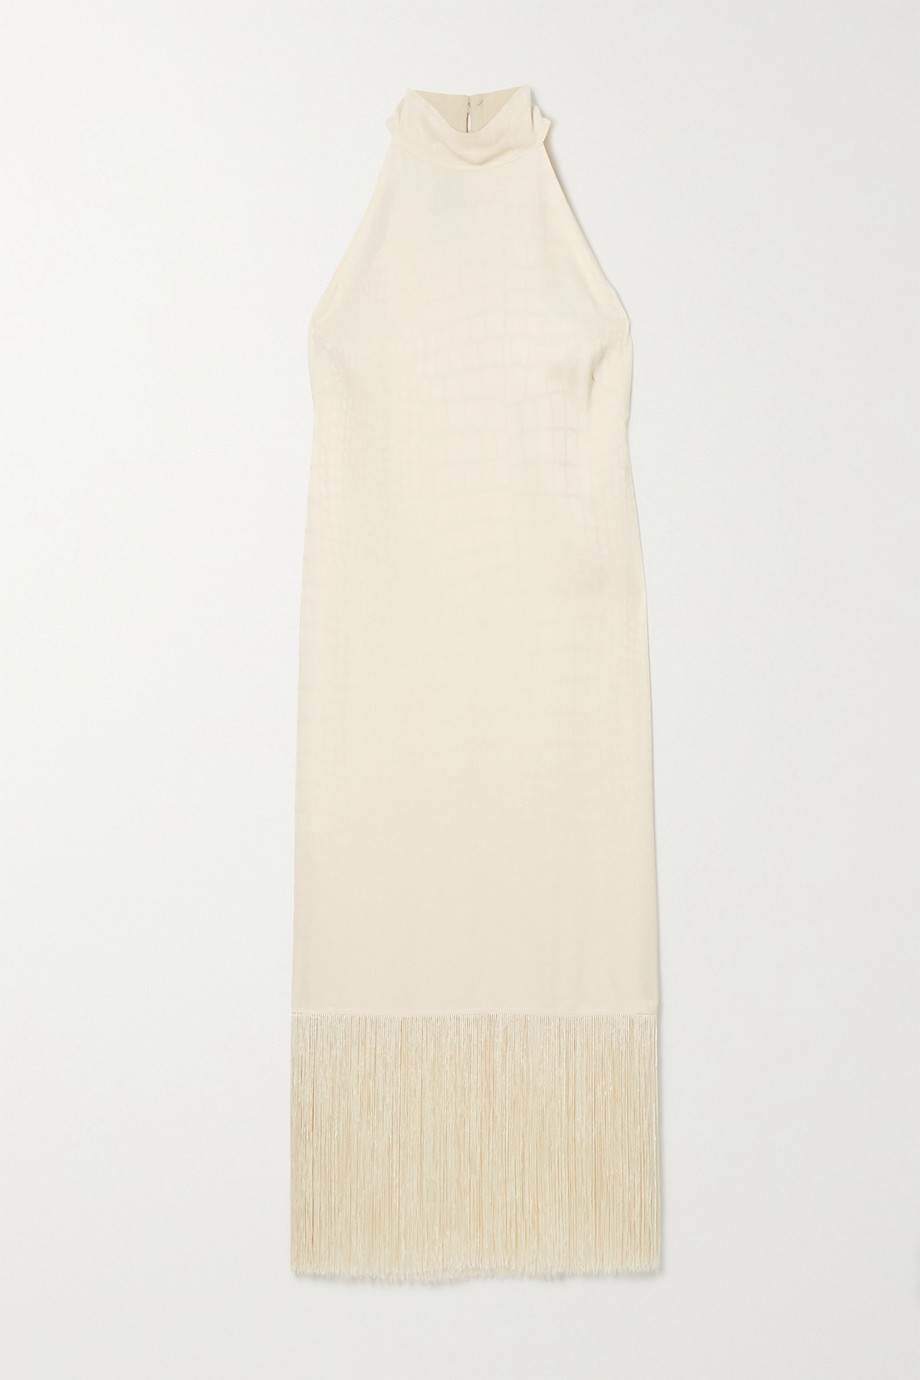 Taller Marmo Olympia fringed satin-jacquard halterneck dress